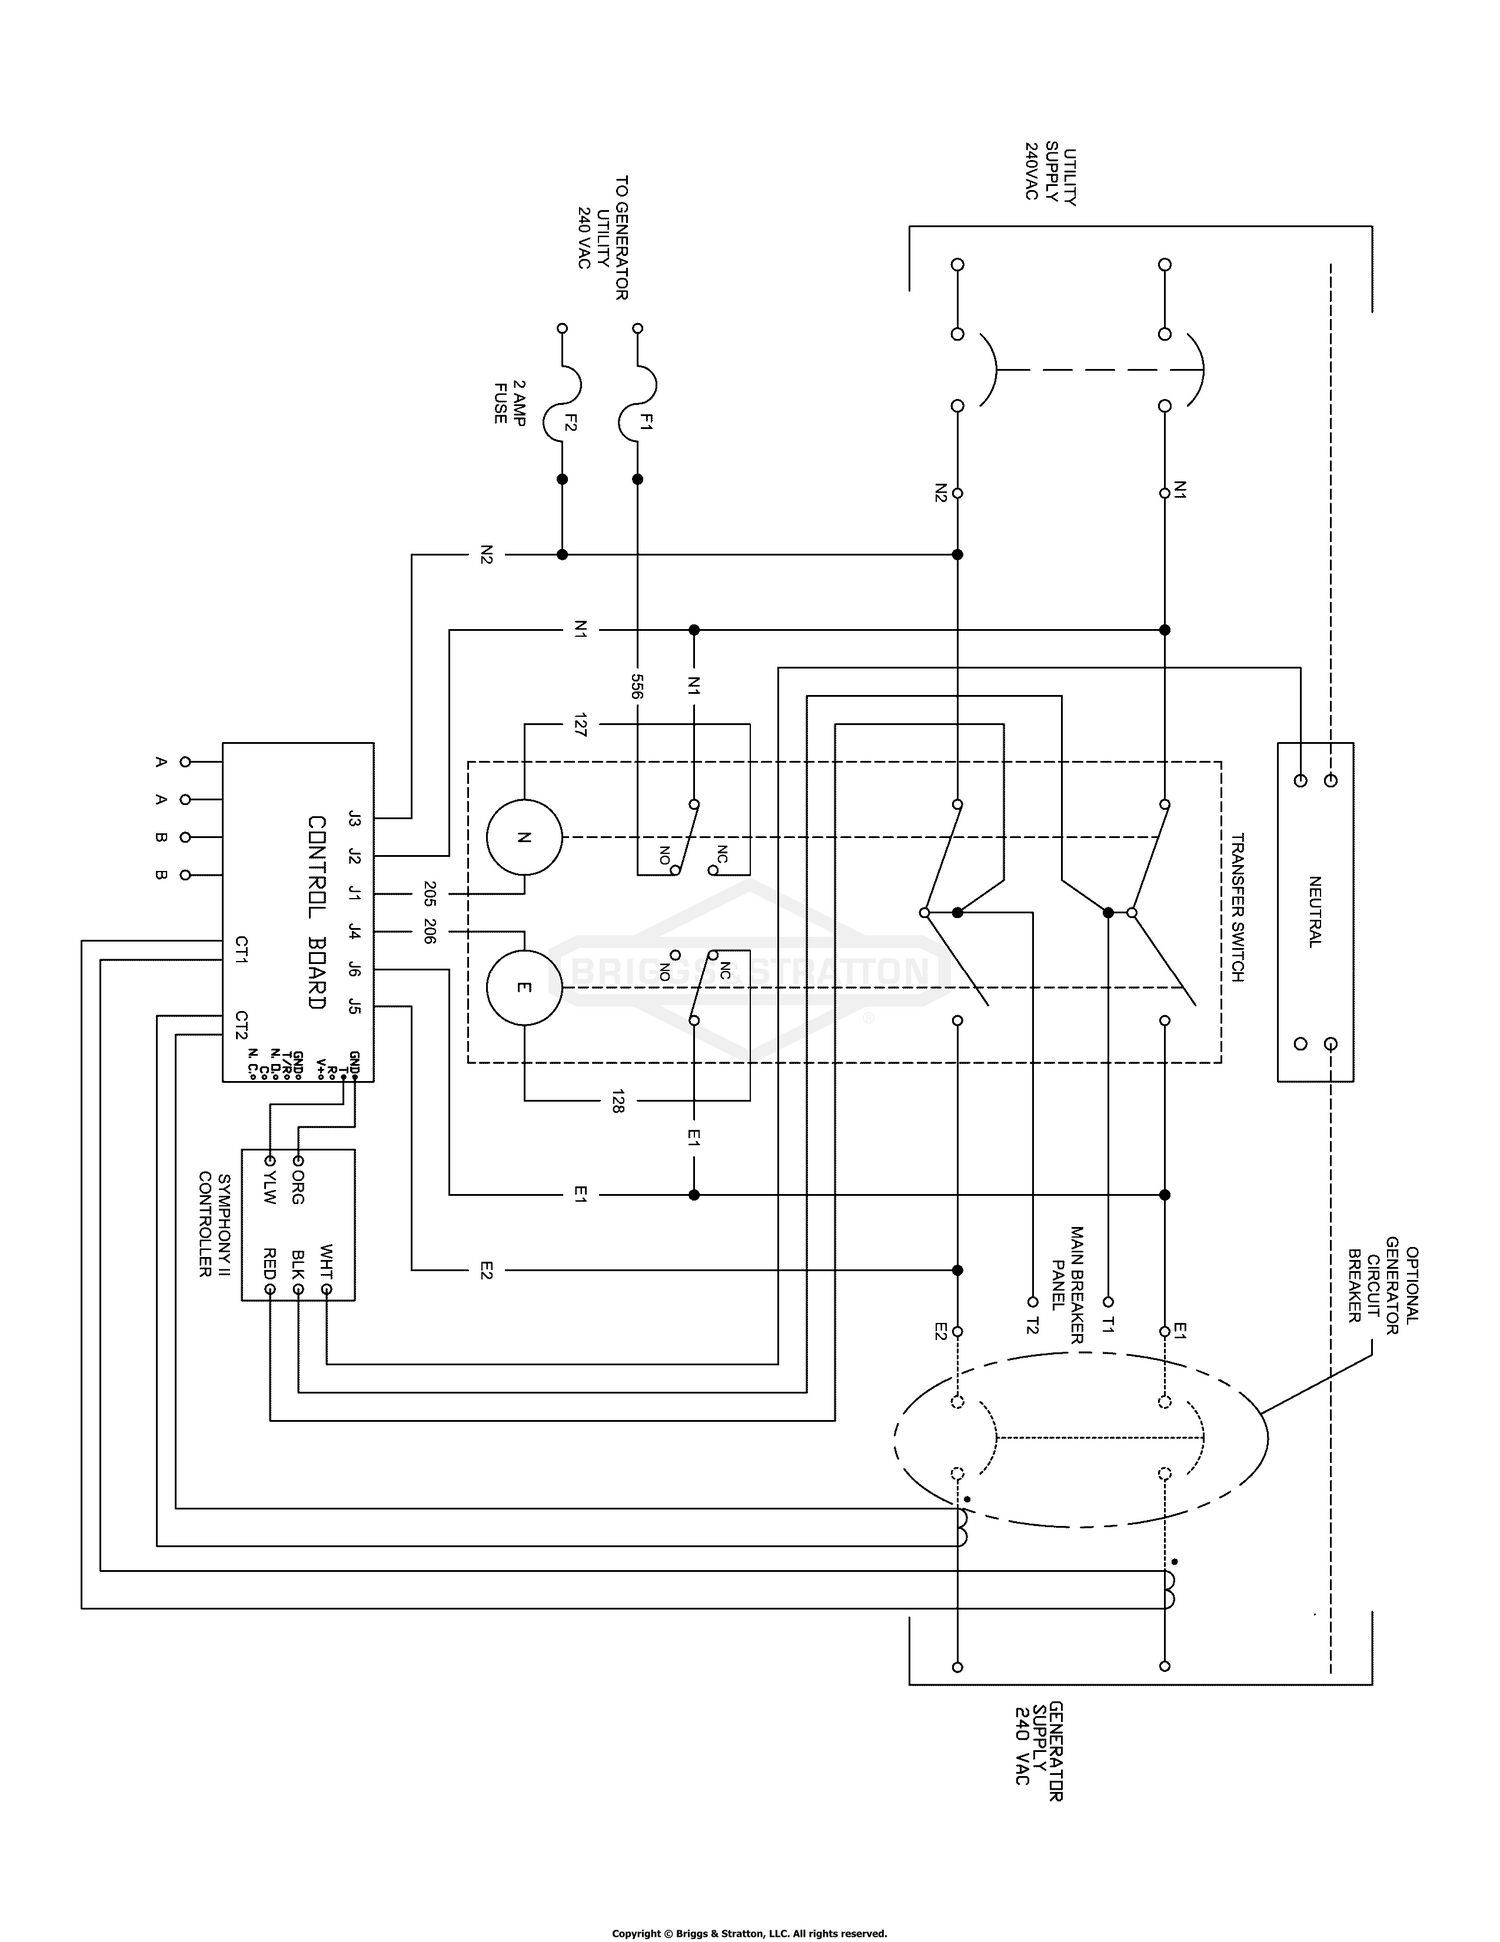 Transfer Switch - Wiring Schematic